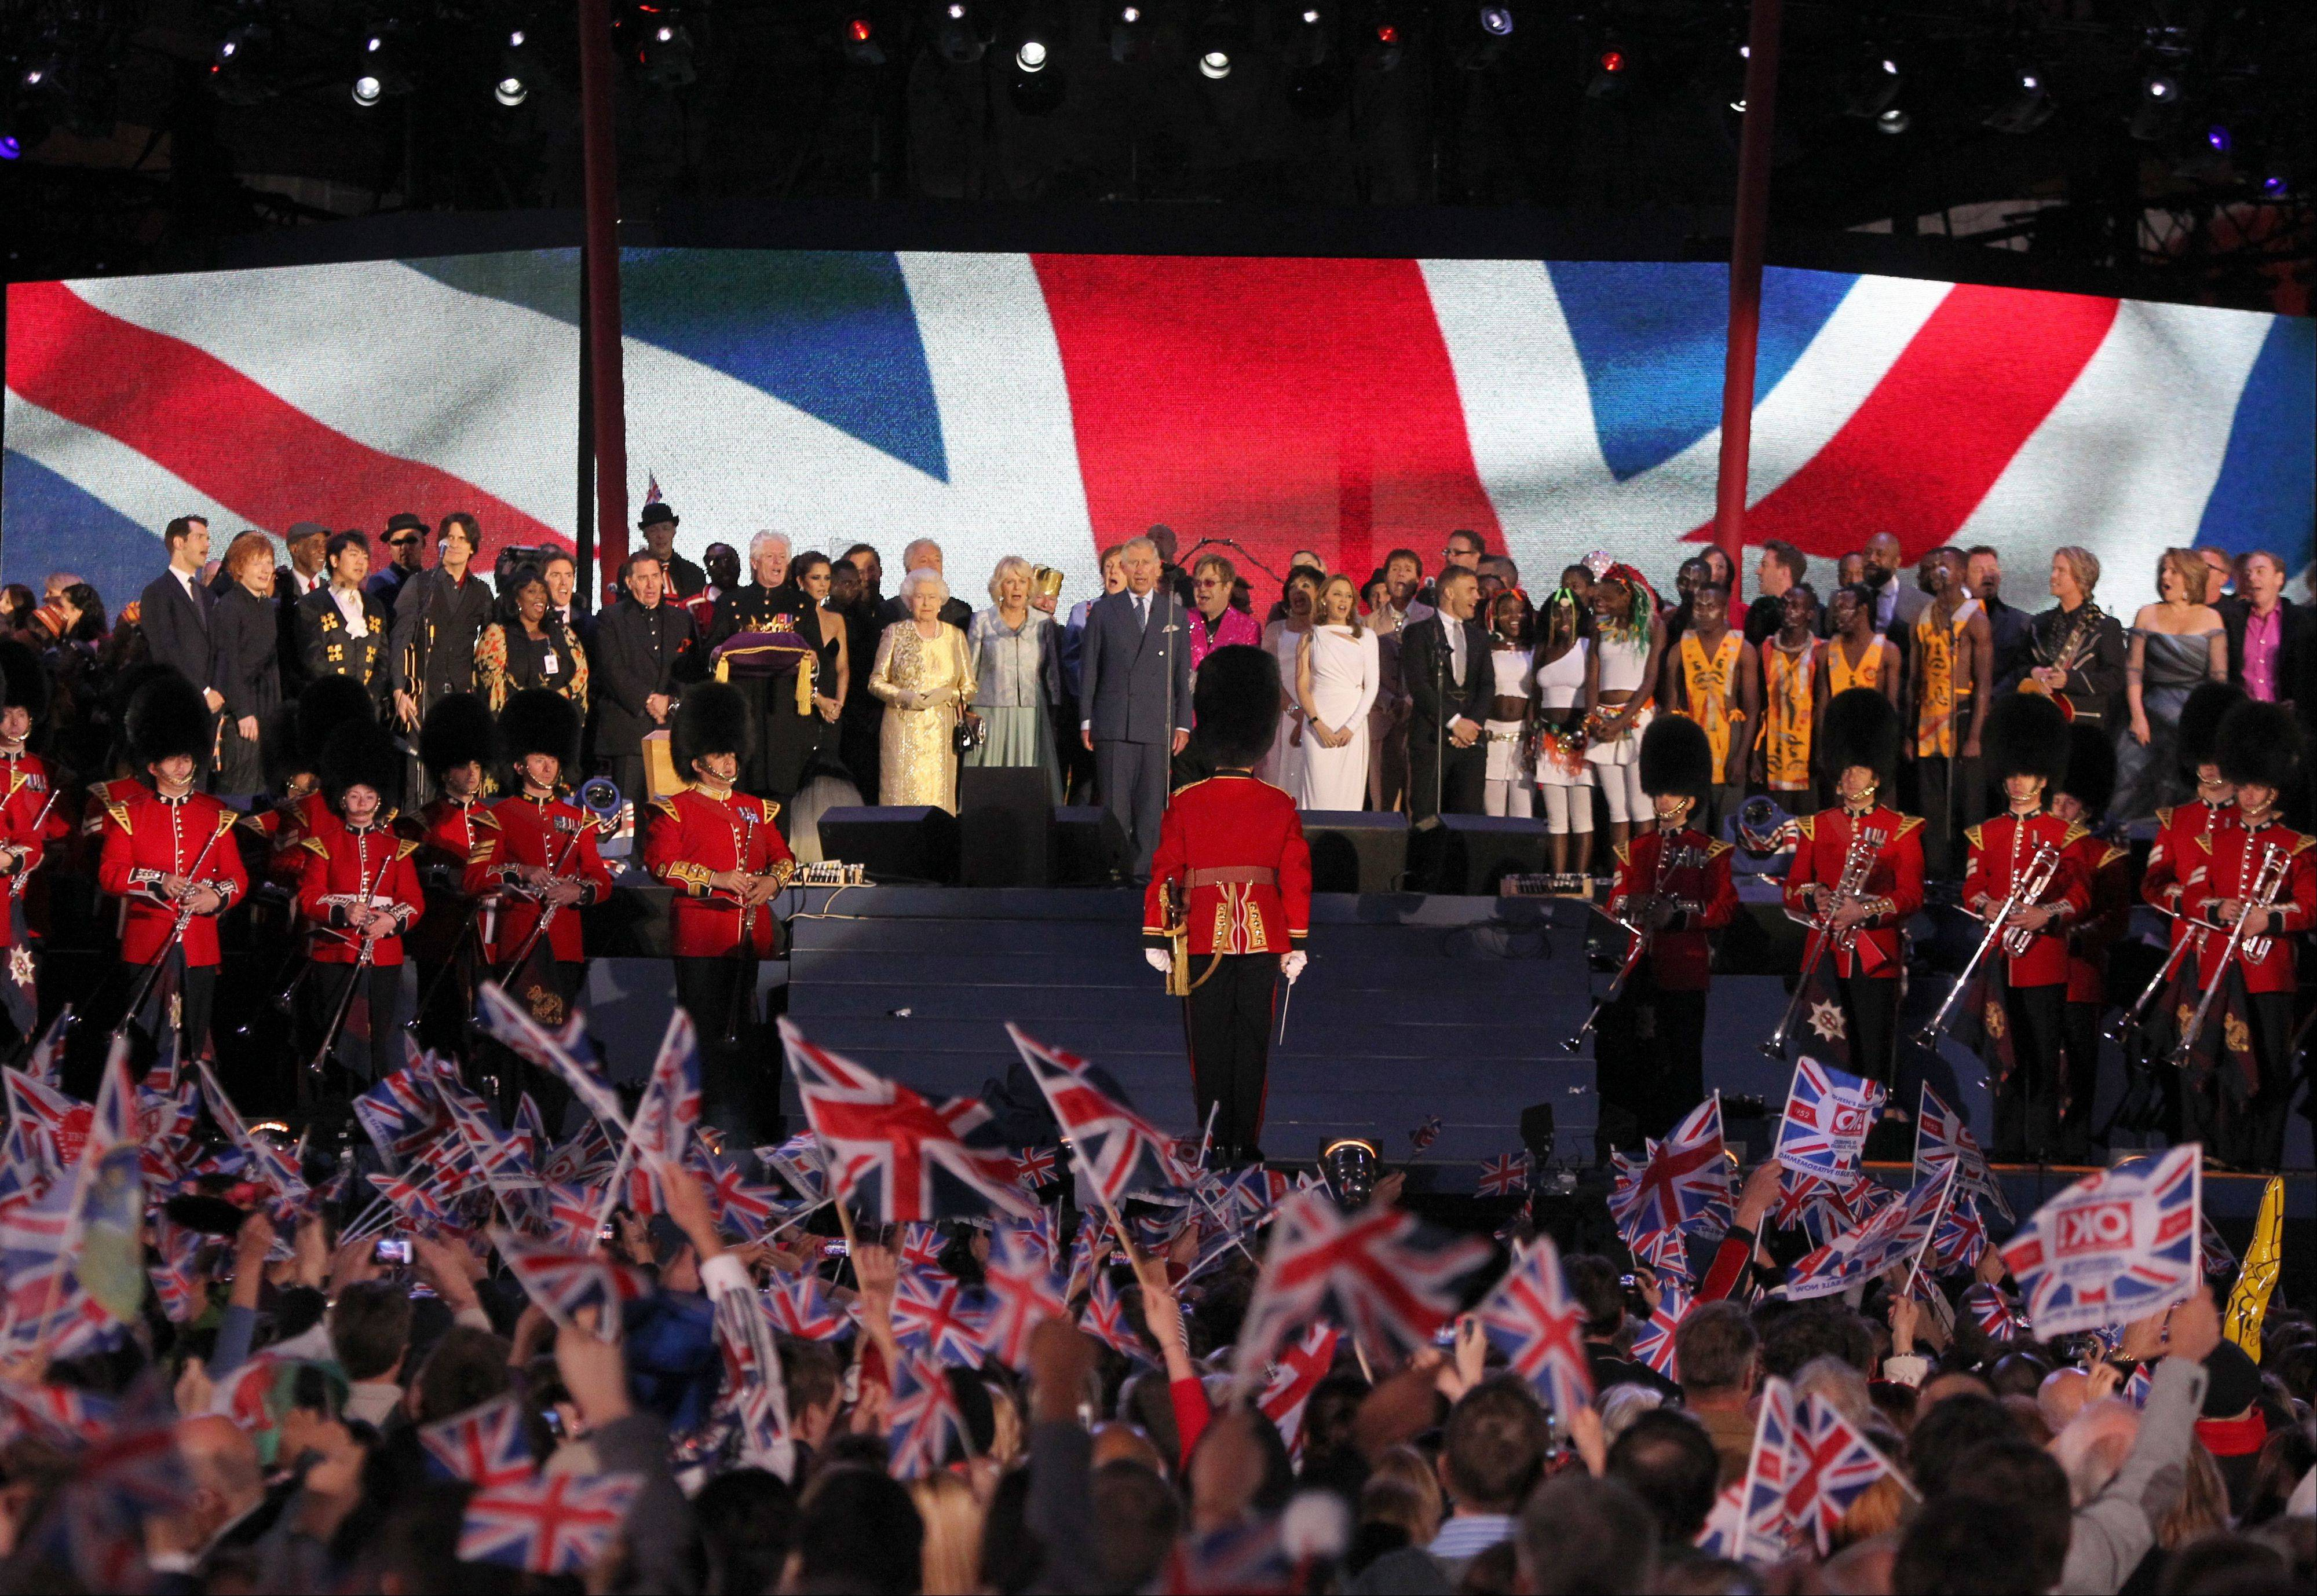 Britain's Prince Charles, centre, Camilla, Duchess of Cornwall, and Britain's Queen Elizabeth II, centre left, are joined on stage by performers at the conclusion of the Queen's Jubilee Concert in front of Buckingham Palace, London, Monday, June 4, 2012. The concert is a part of four days of celebrations to mark the 60-year reign of Britain's Queen Elizabeth II.